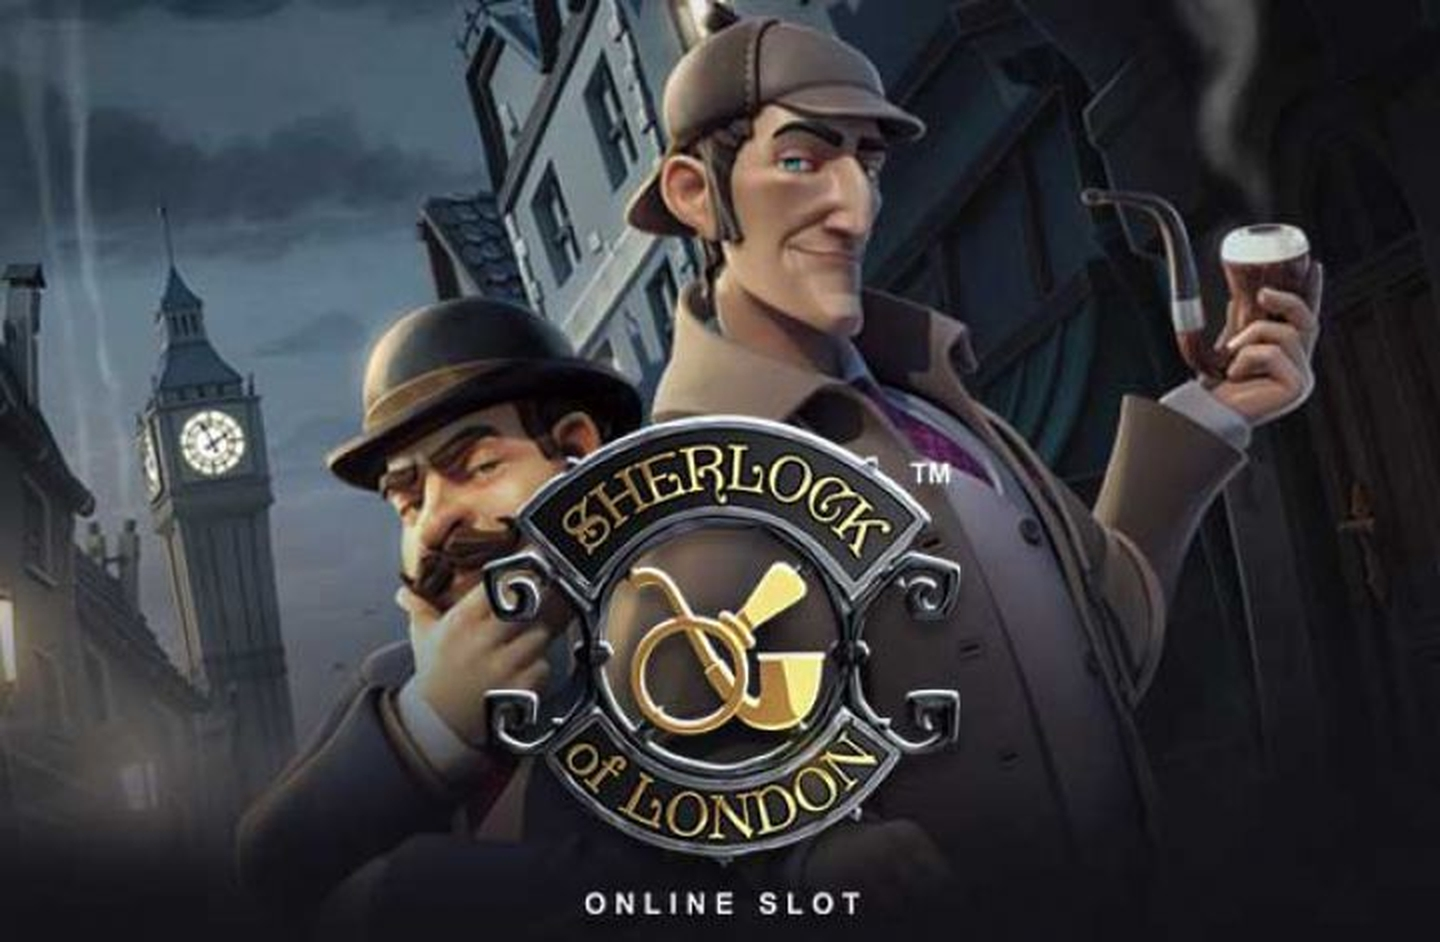 The Sherlock of London Online Slot Demo Game by Rabcat